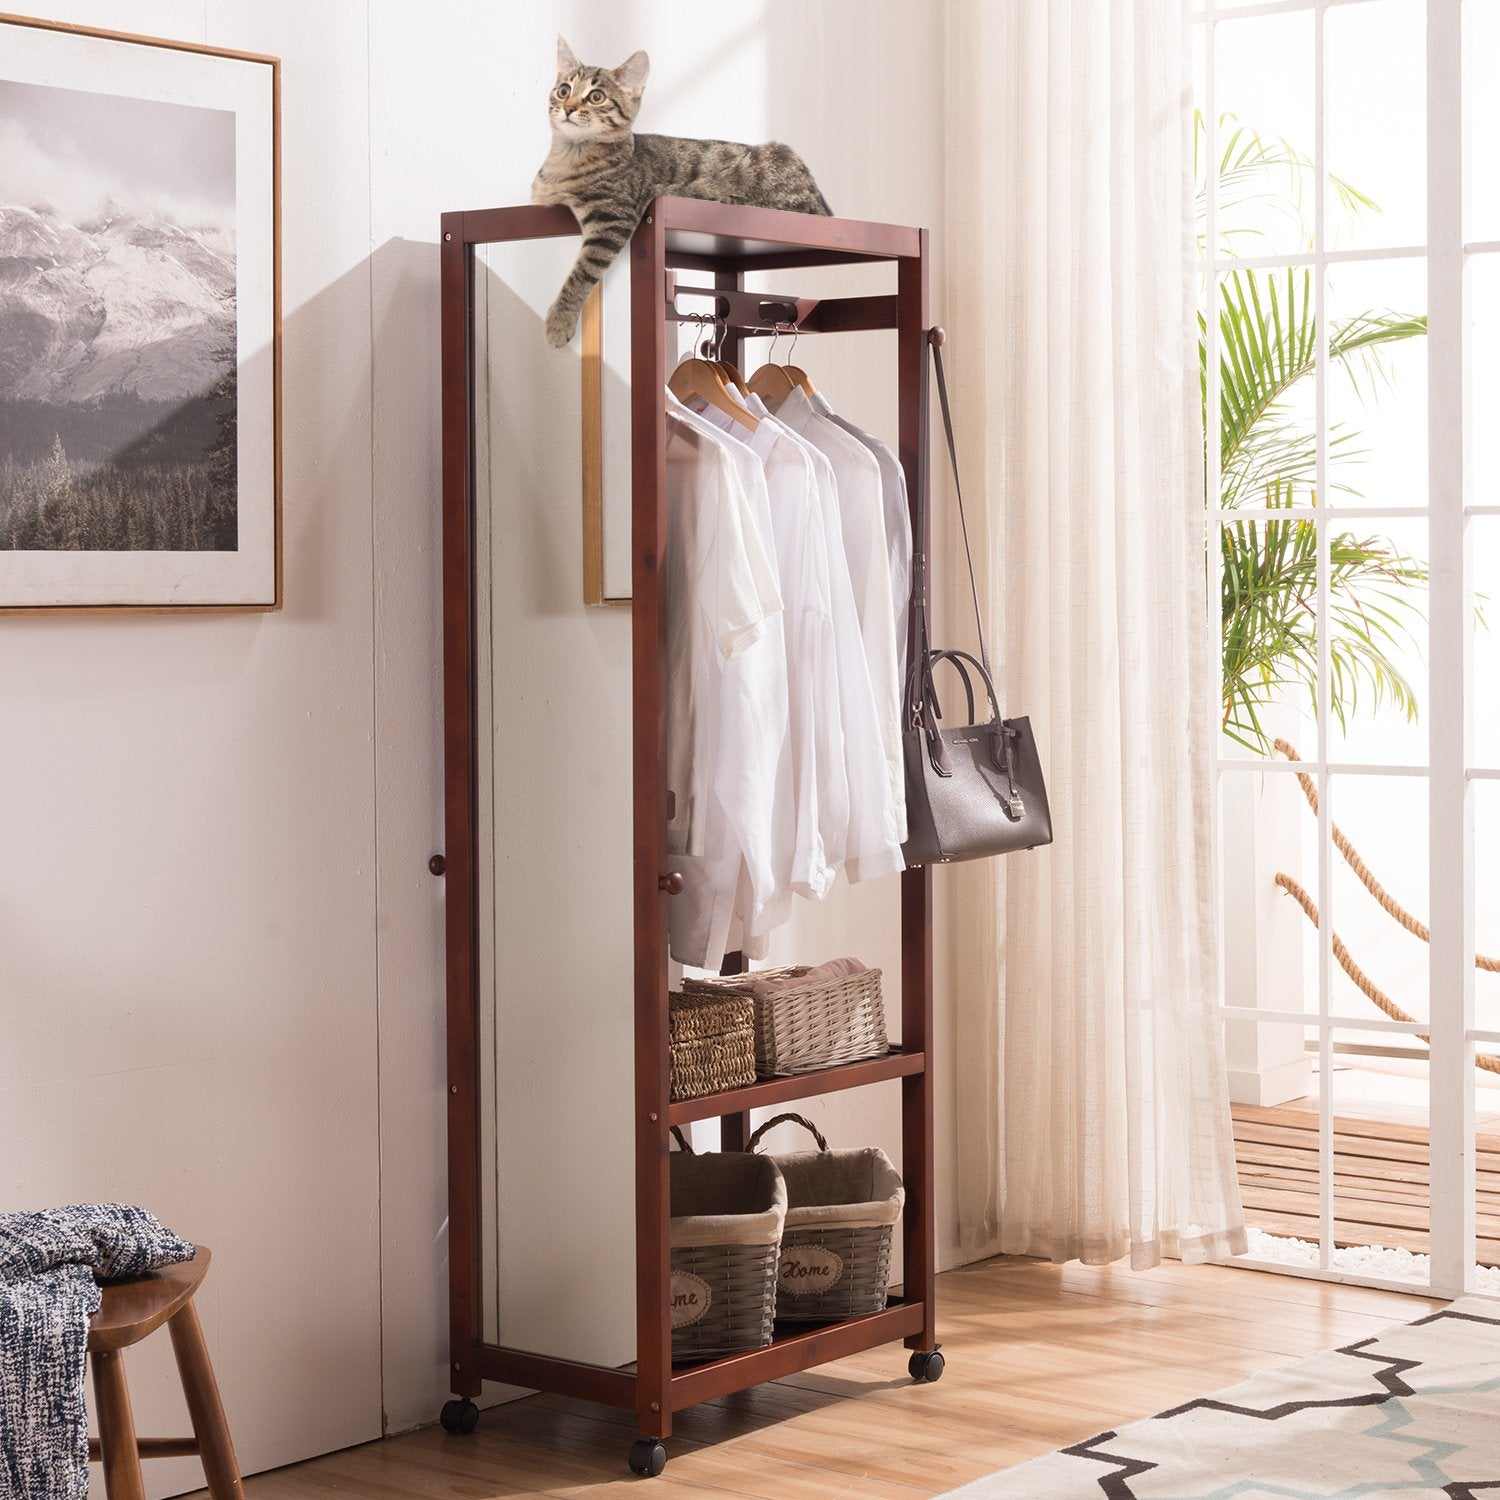 67'' Tall Free Standing Closet Wardrobe Bedroom Armoires with Full Length Dressing Floor Mirror,Brake Wheels,Hanger Rod,Coat Stand,Coat Hooks,Entryway Storage Shelves Organizer-Solid Pine Wood,Brown